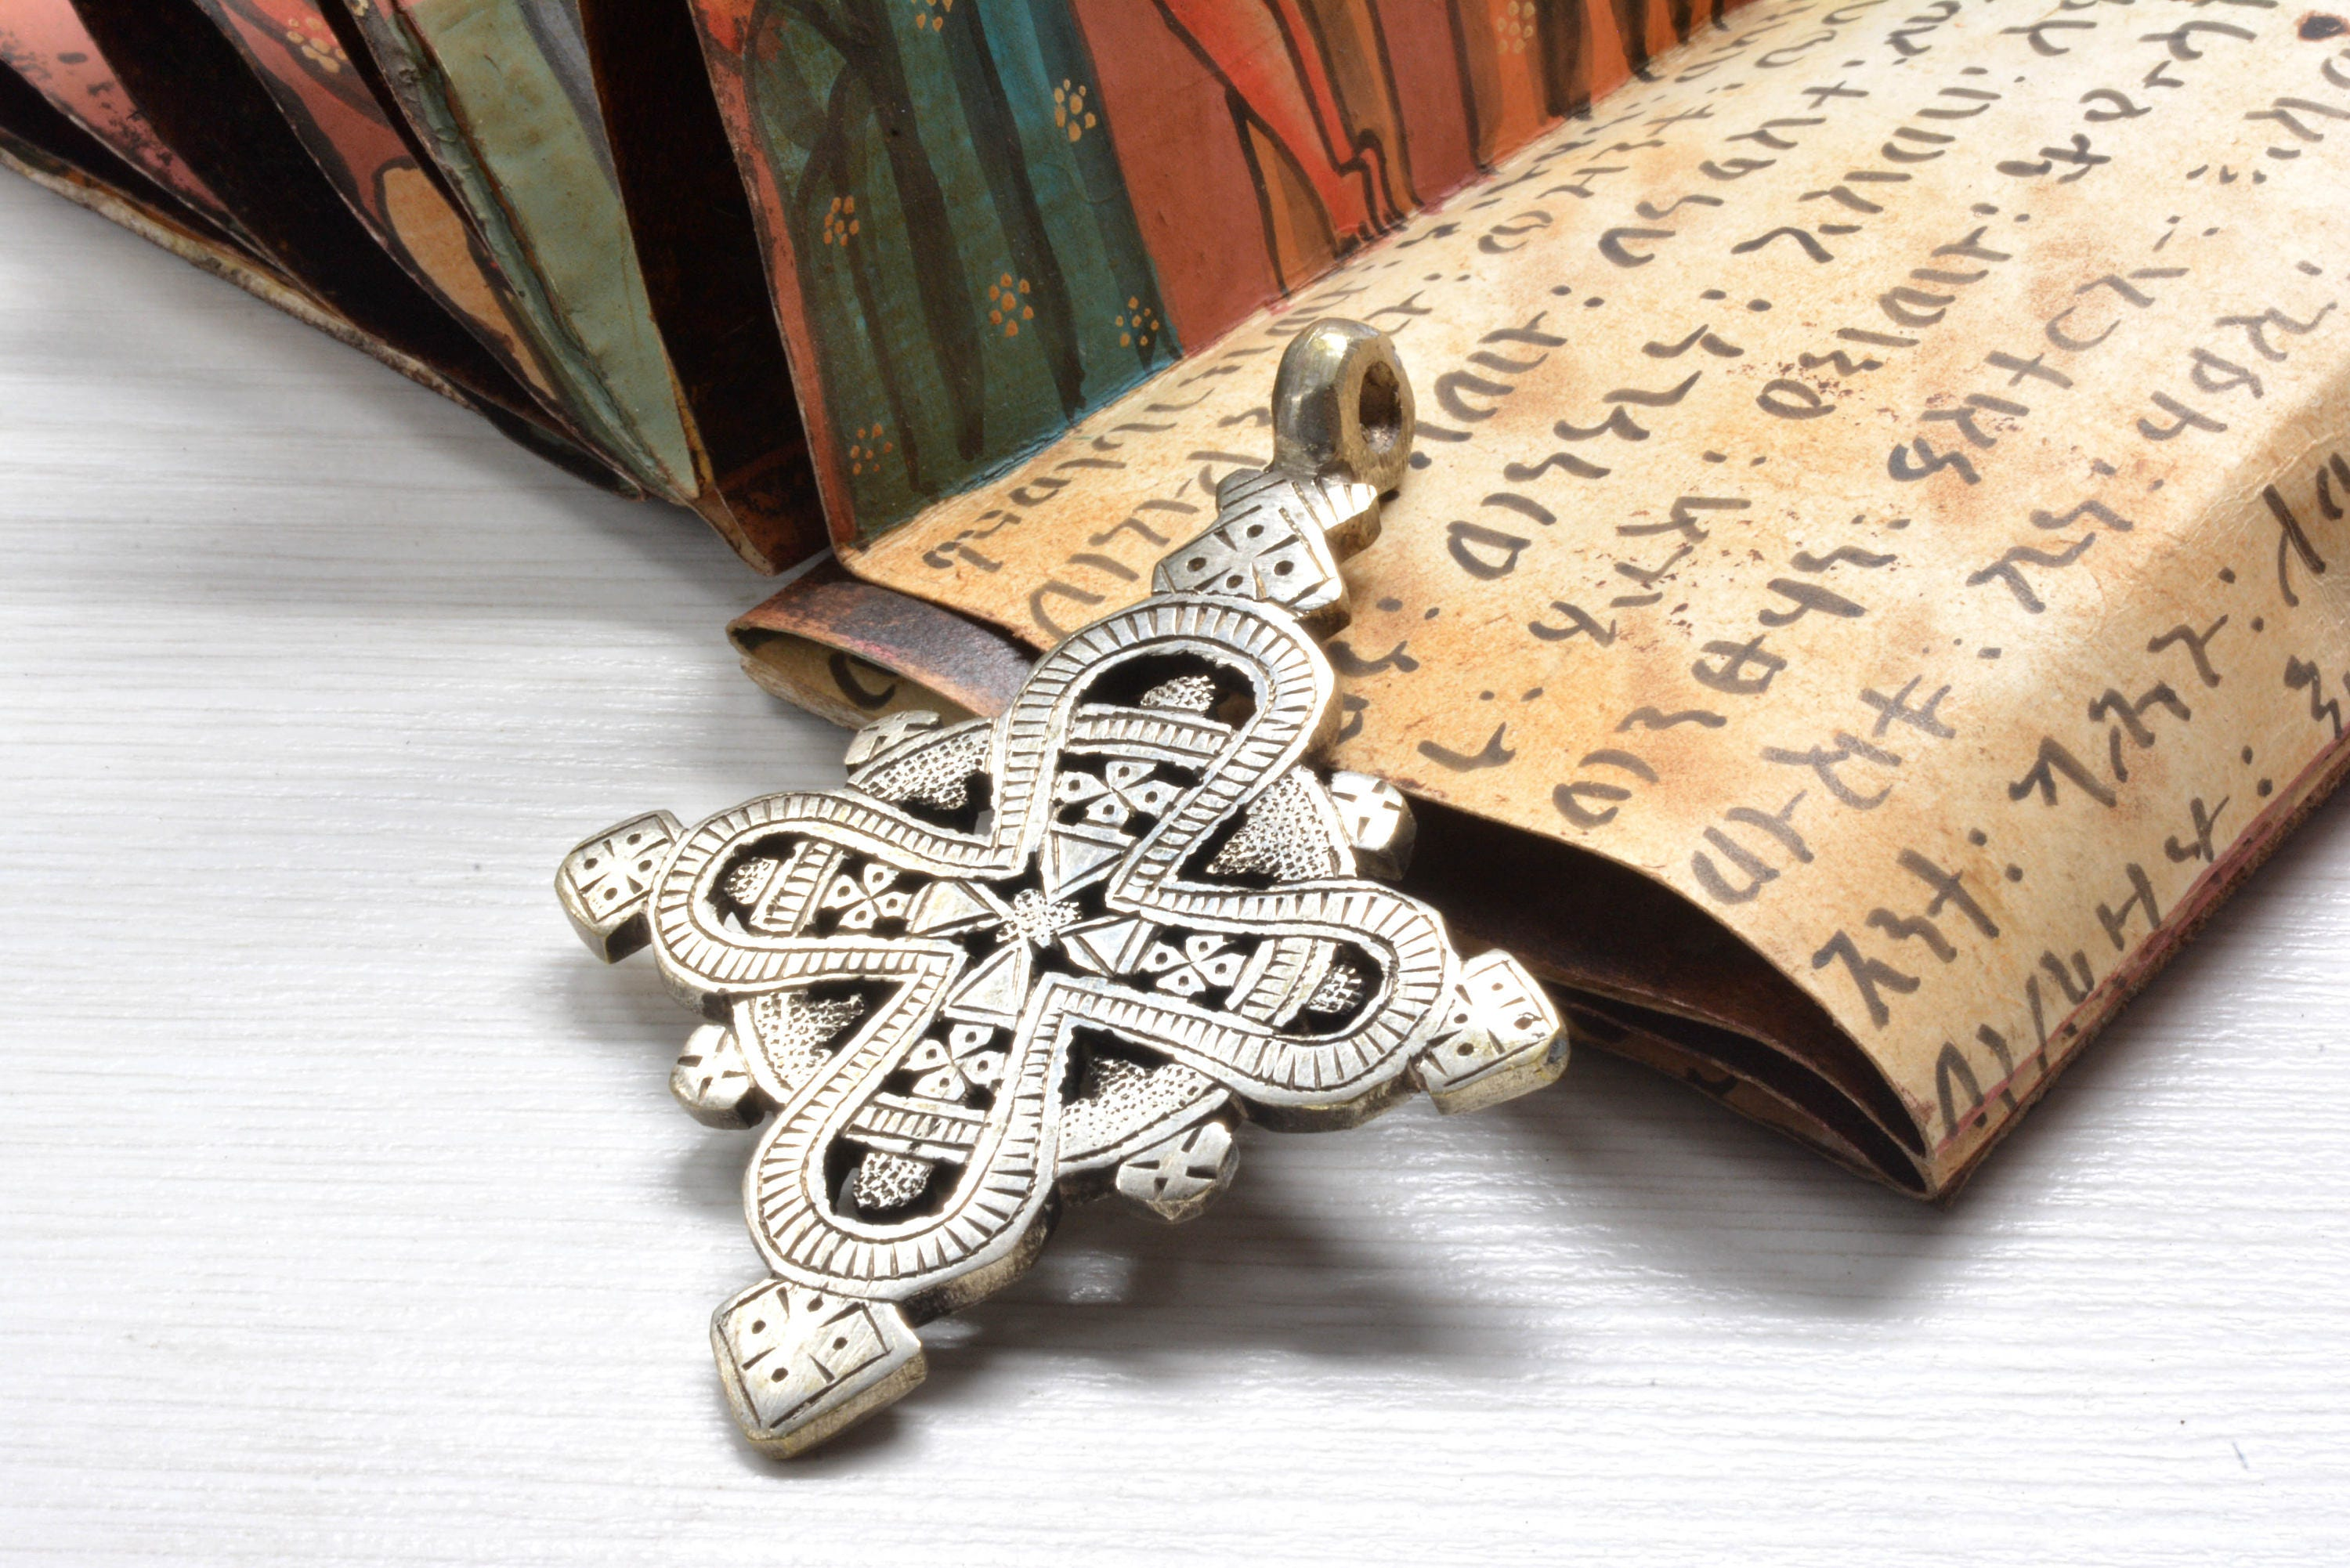 silver ornate auction jewellery cross auctions beautiful large jerusalem crusaders secondhand pendant original